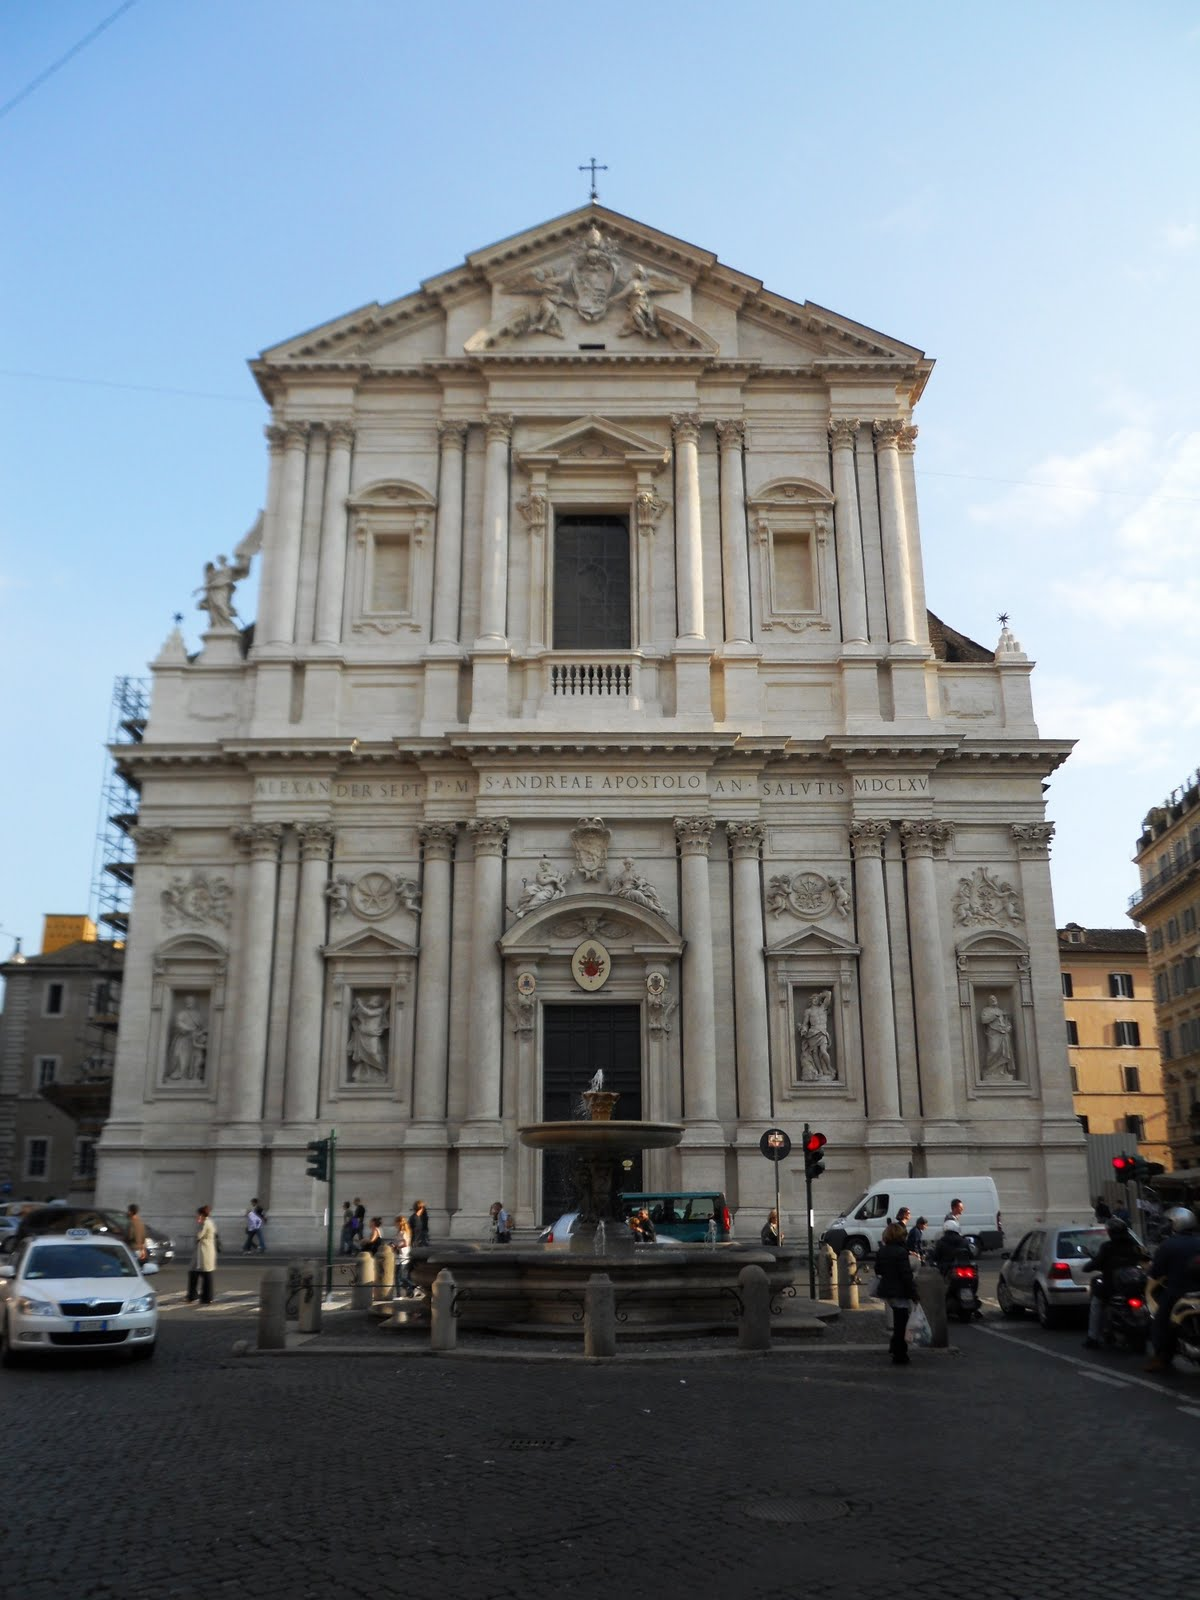 reformation rome - photo#23